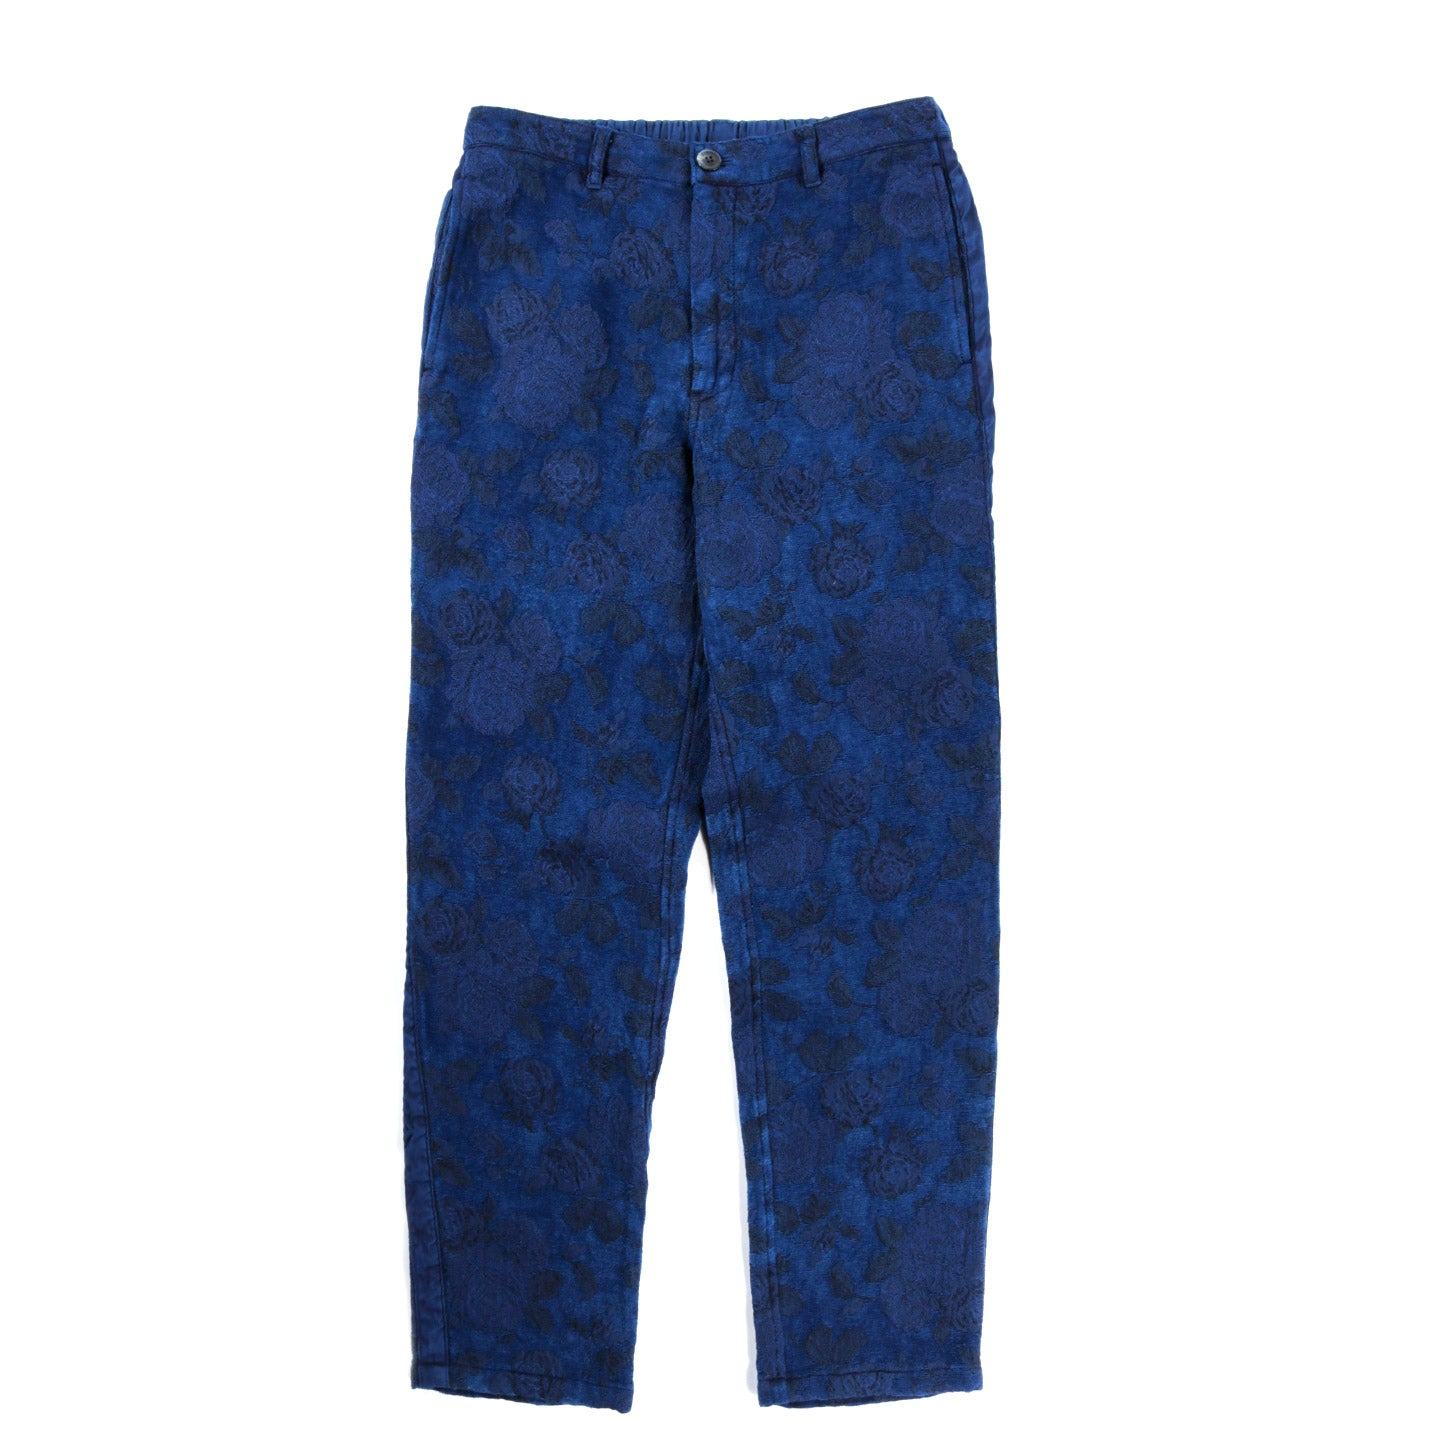 BLUE BLUE JAPAN BLUE ROSE GOBELIN HAND DYED SIDE LINE PANTS INDIGO